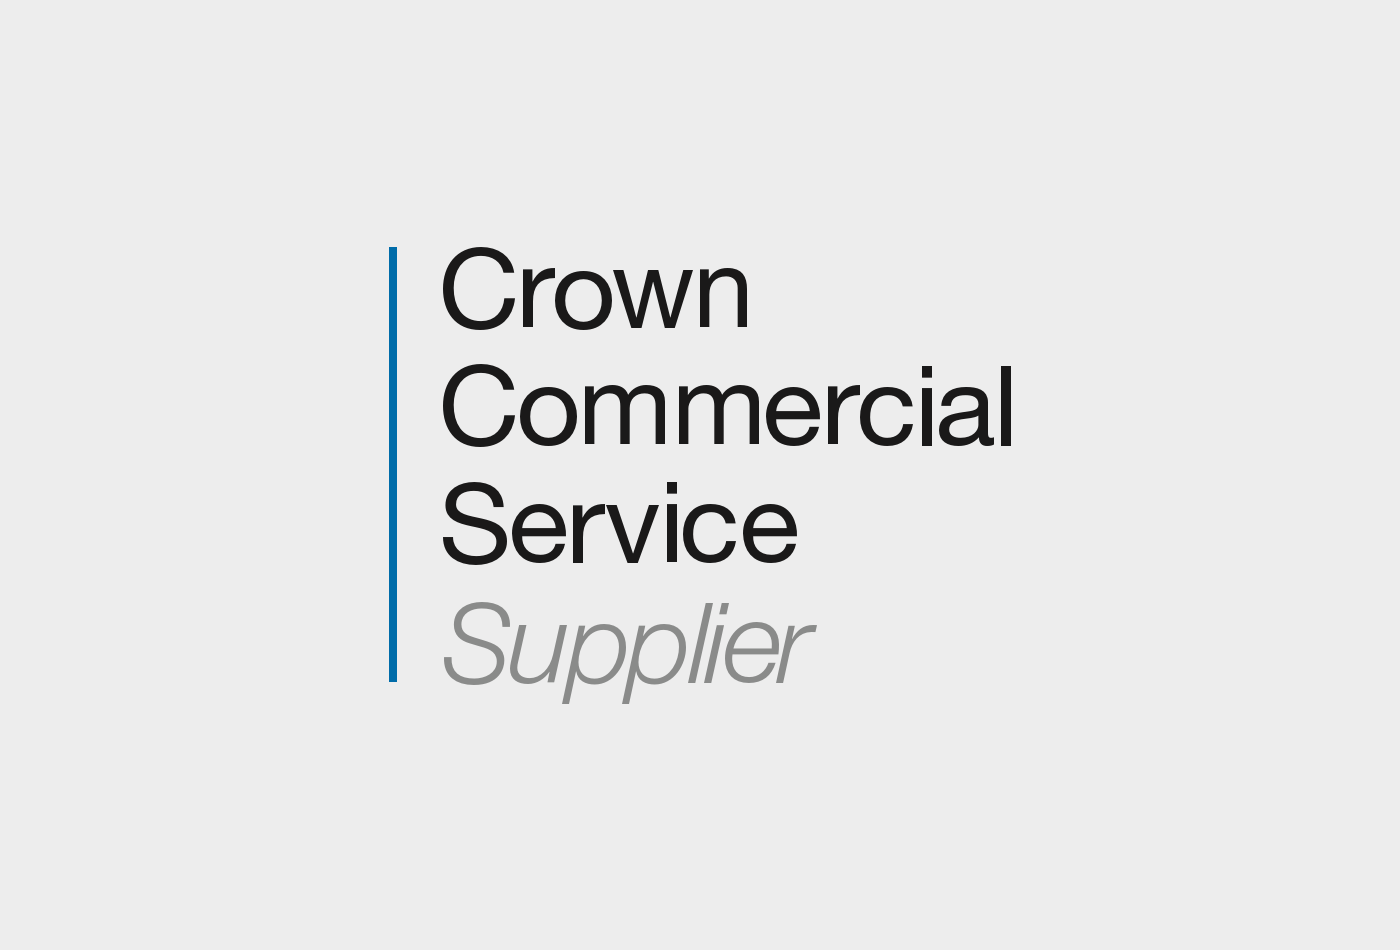 Delivering Driver Behaviour Insights to Fleets: The Floow Selected as a Supplier by Crown Commercial Services